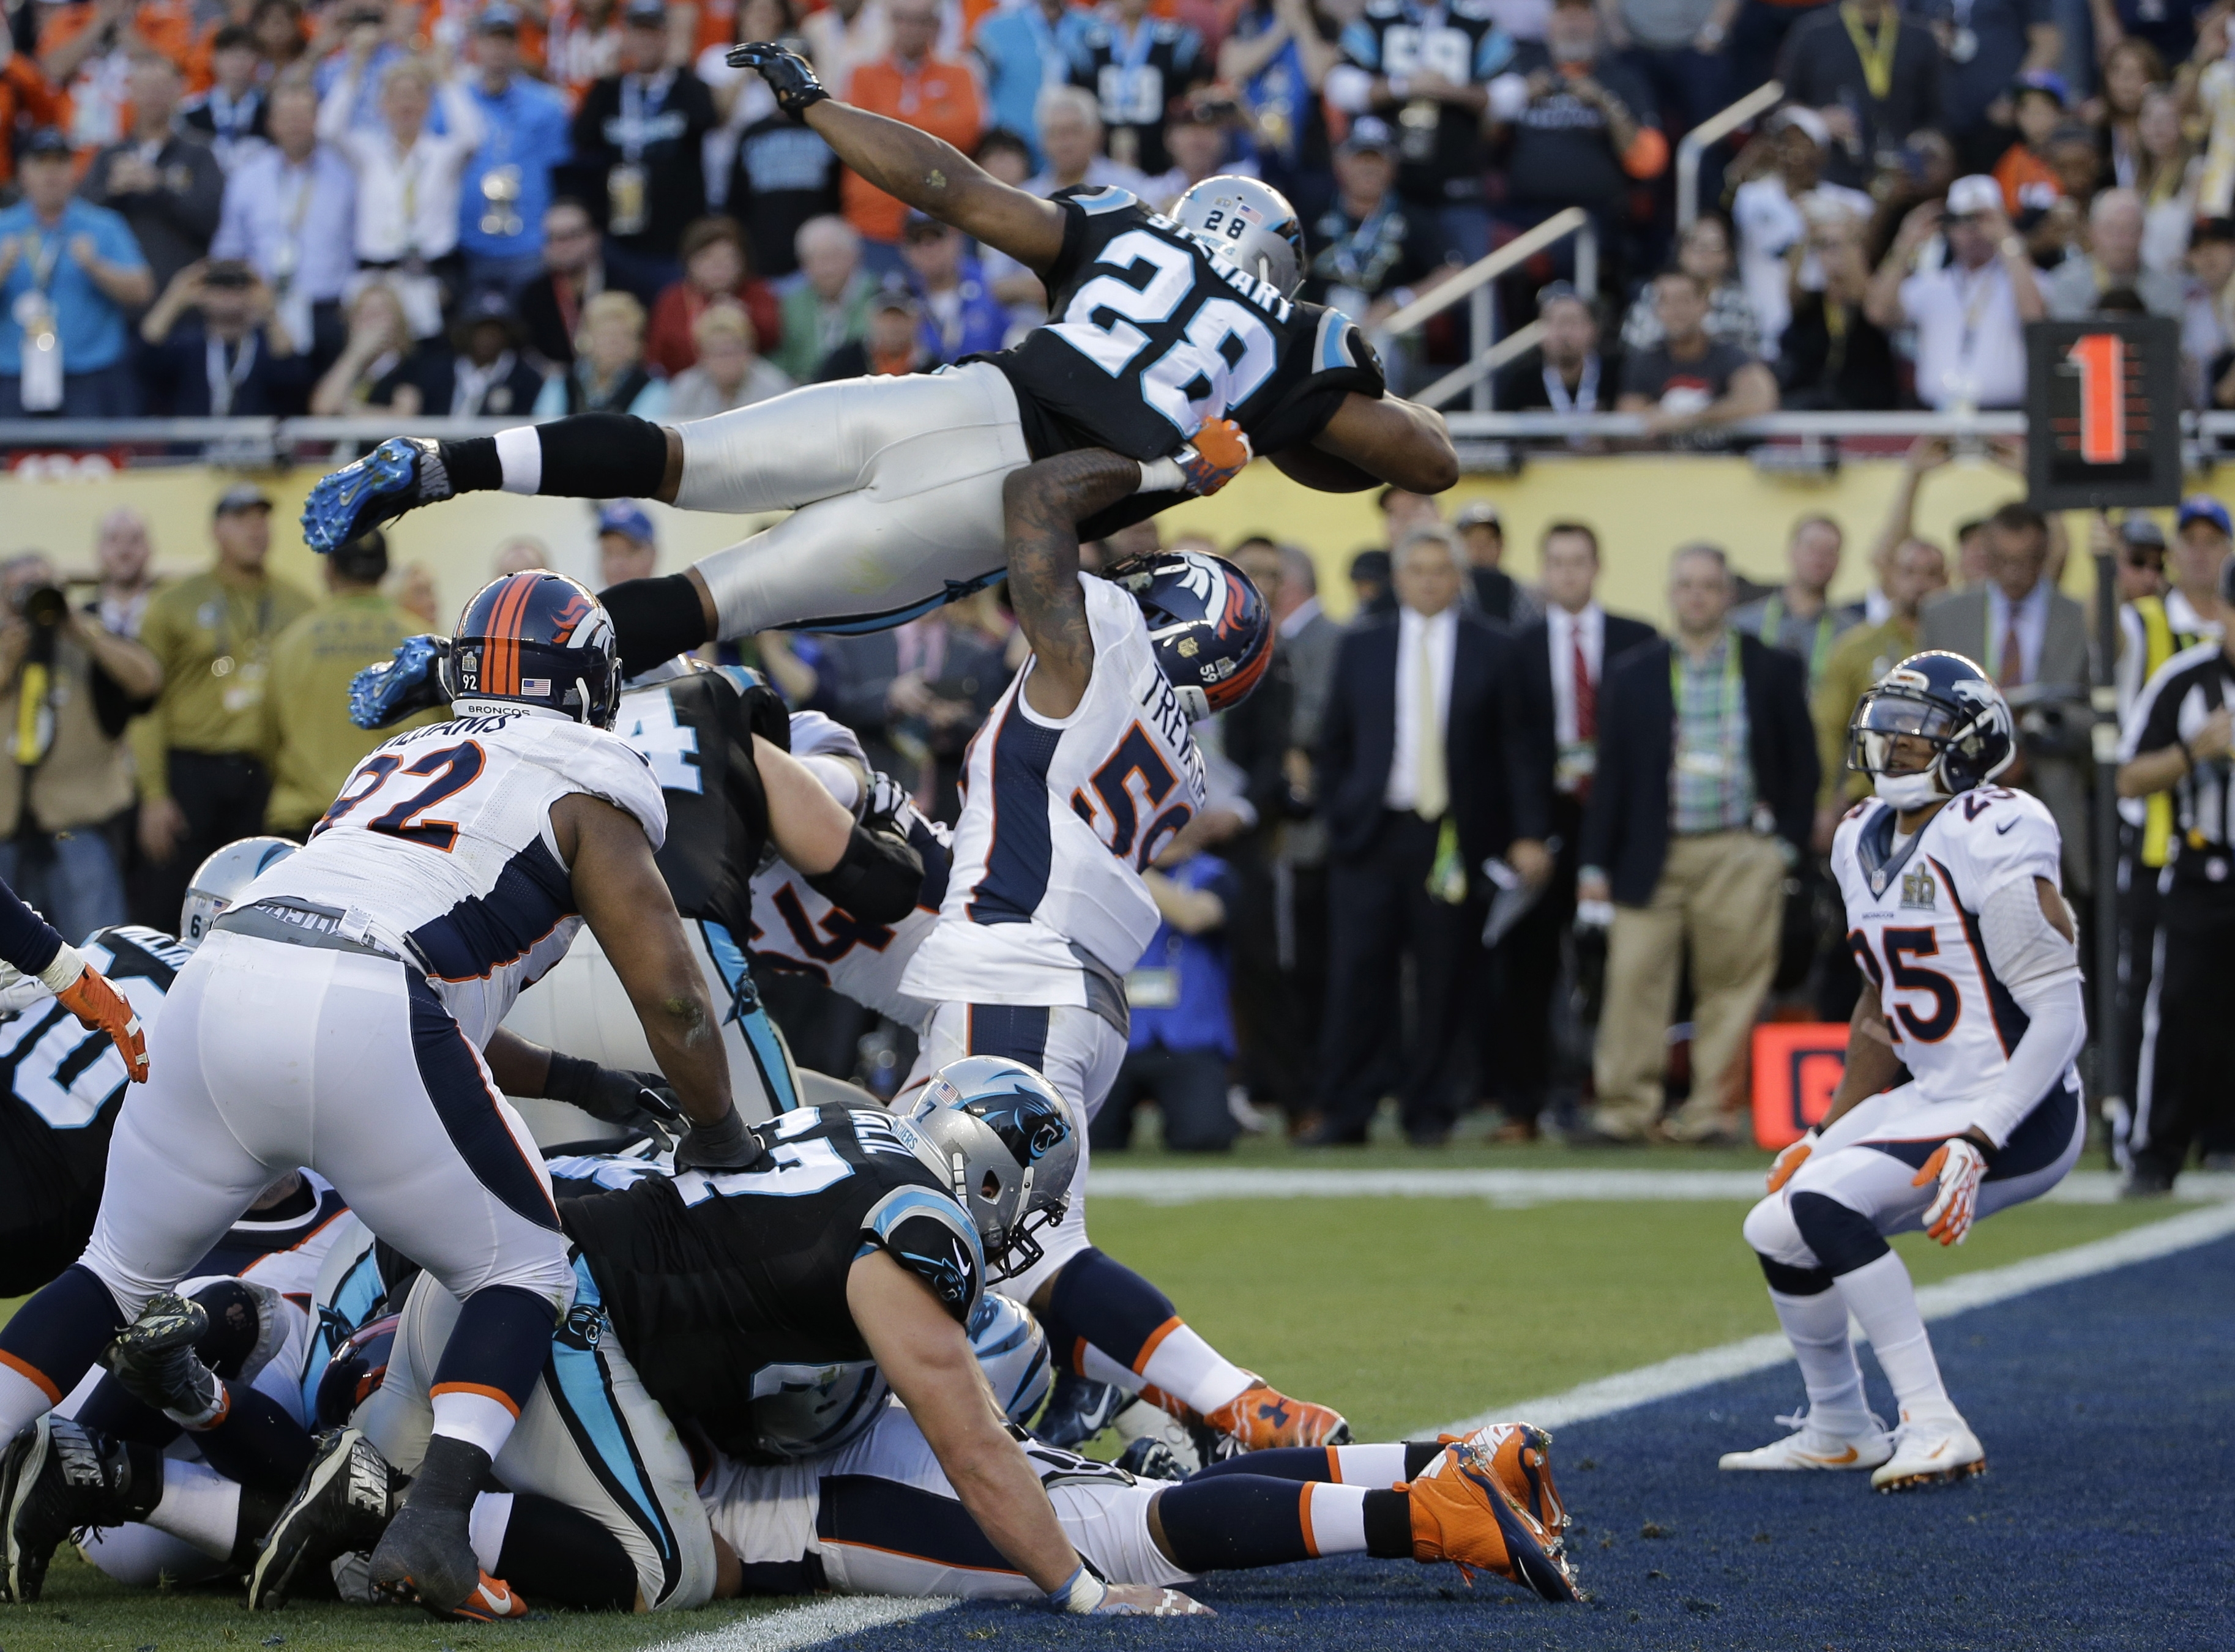 Photo: Panthers' Jonathan Stewart leaps for a touchdown, Super Bowl 50(AP7)